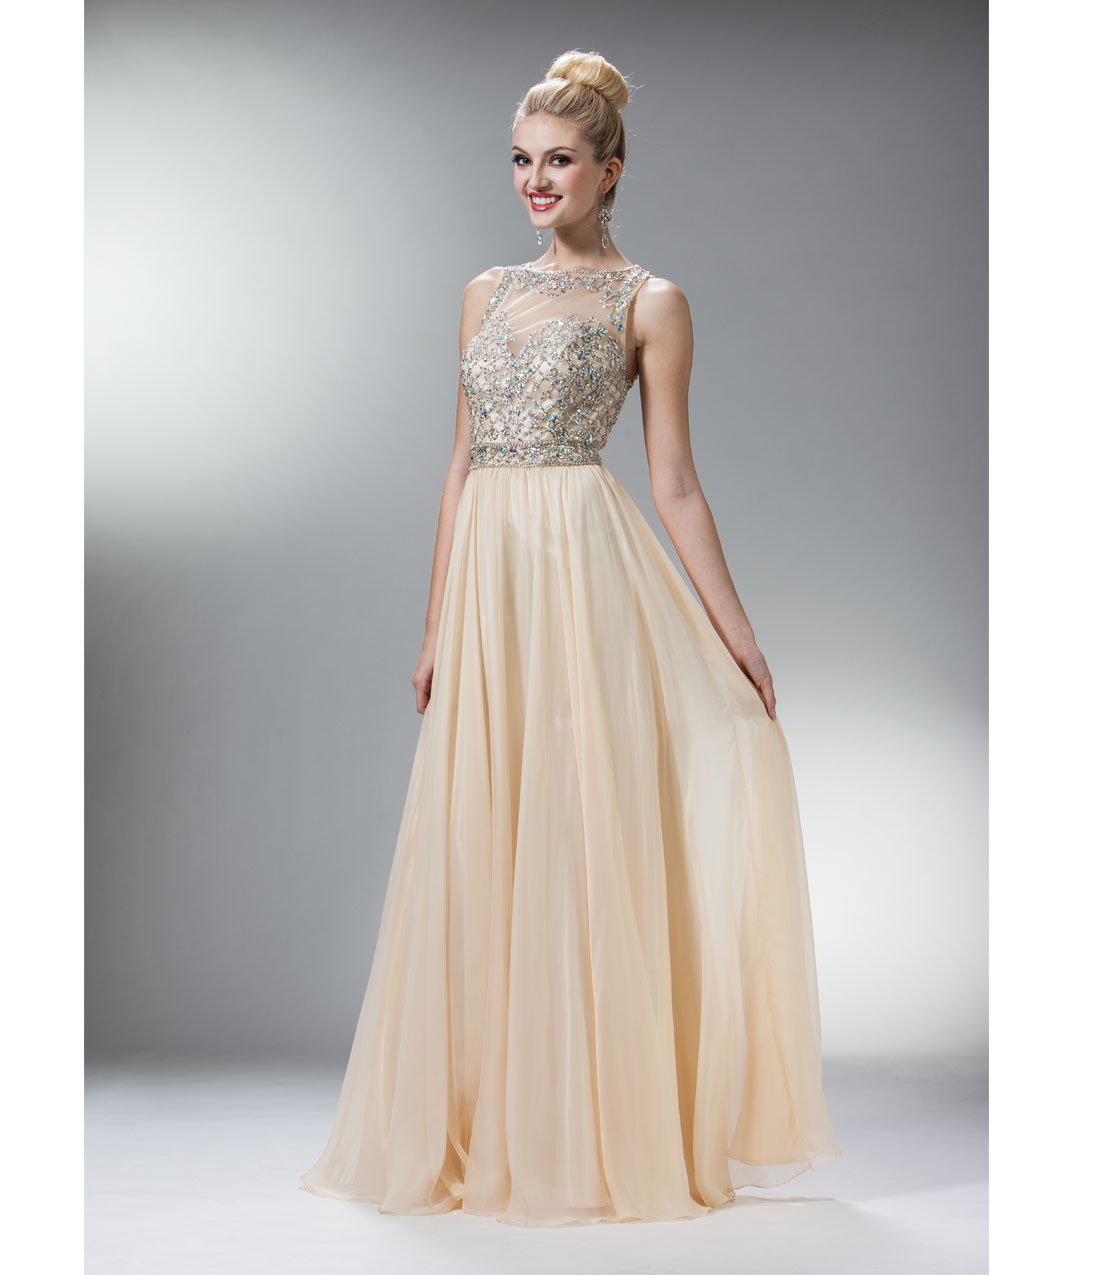 Gown - Unique Vintage - Prom dresses  retro dresses  retro swimsuitsVintage Inspired Prom Dresses 2014